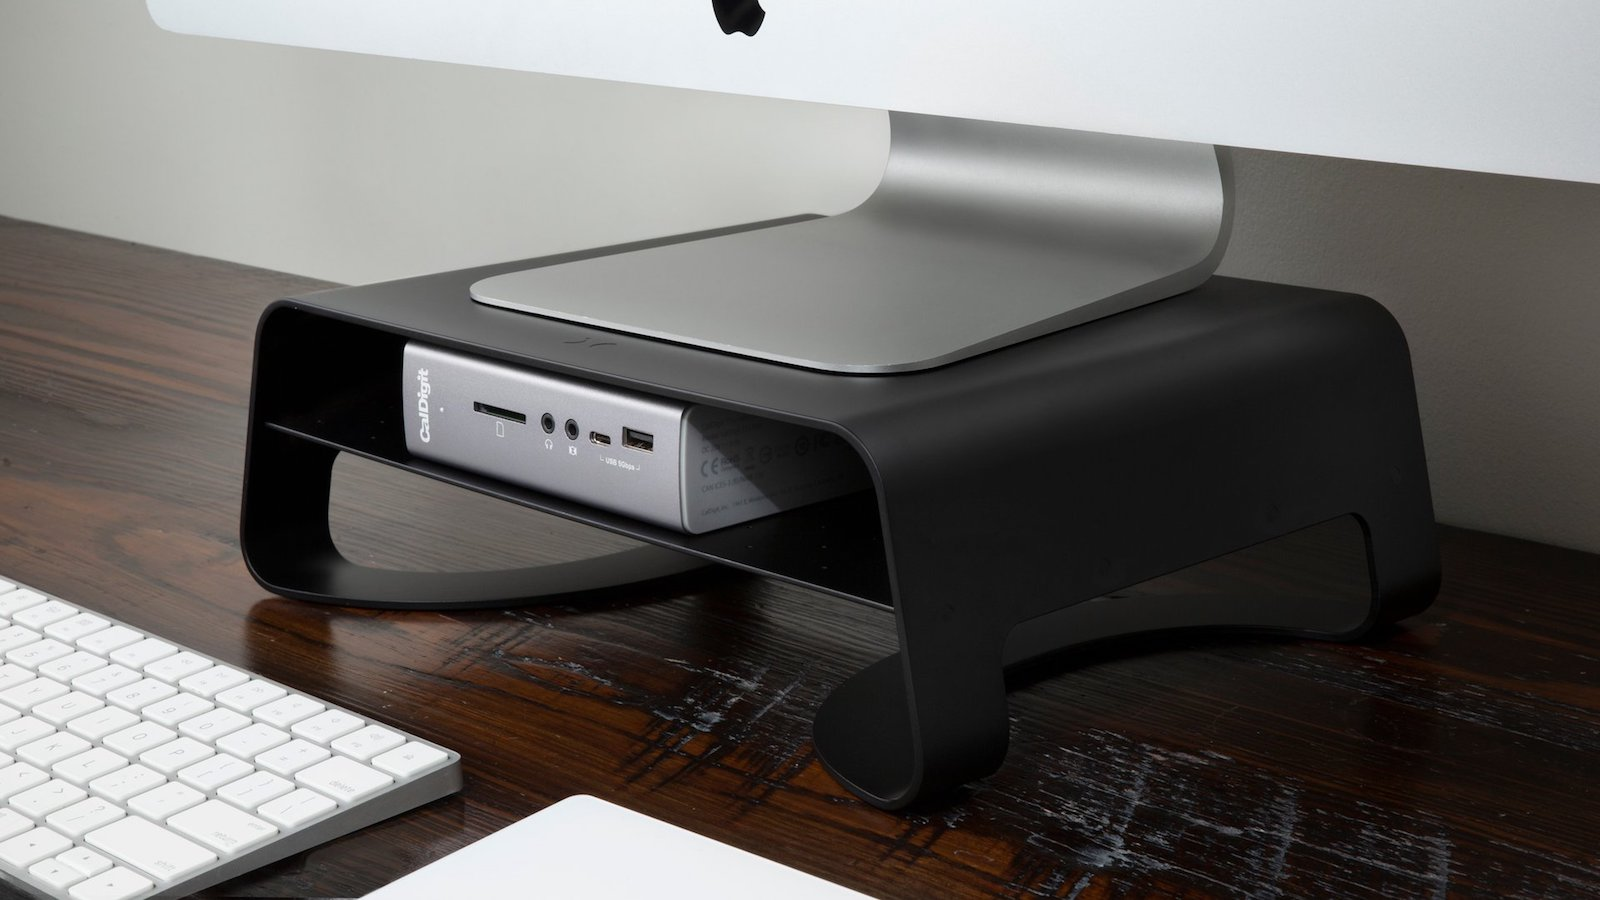 Twelve South Curve Riser iMac stand has a ventilated design